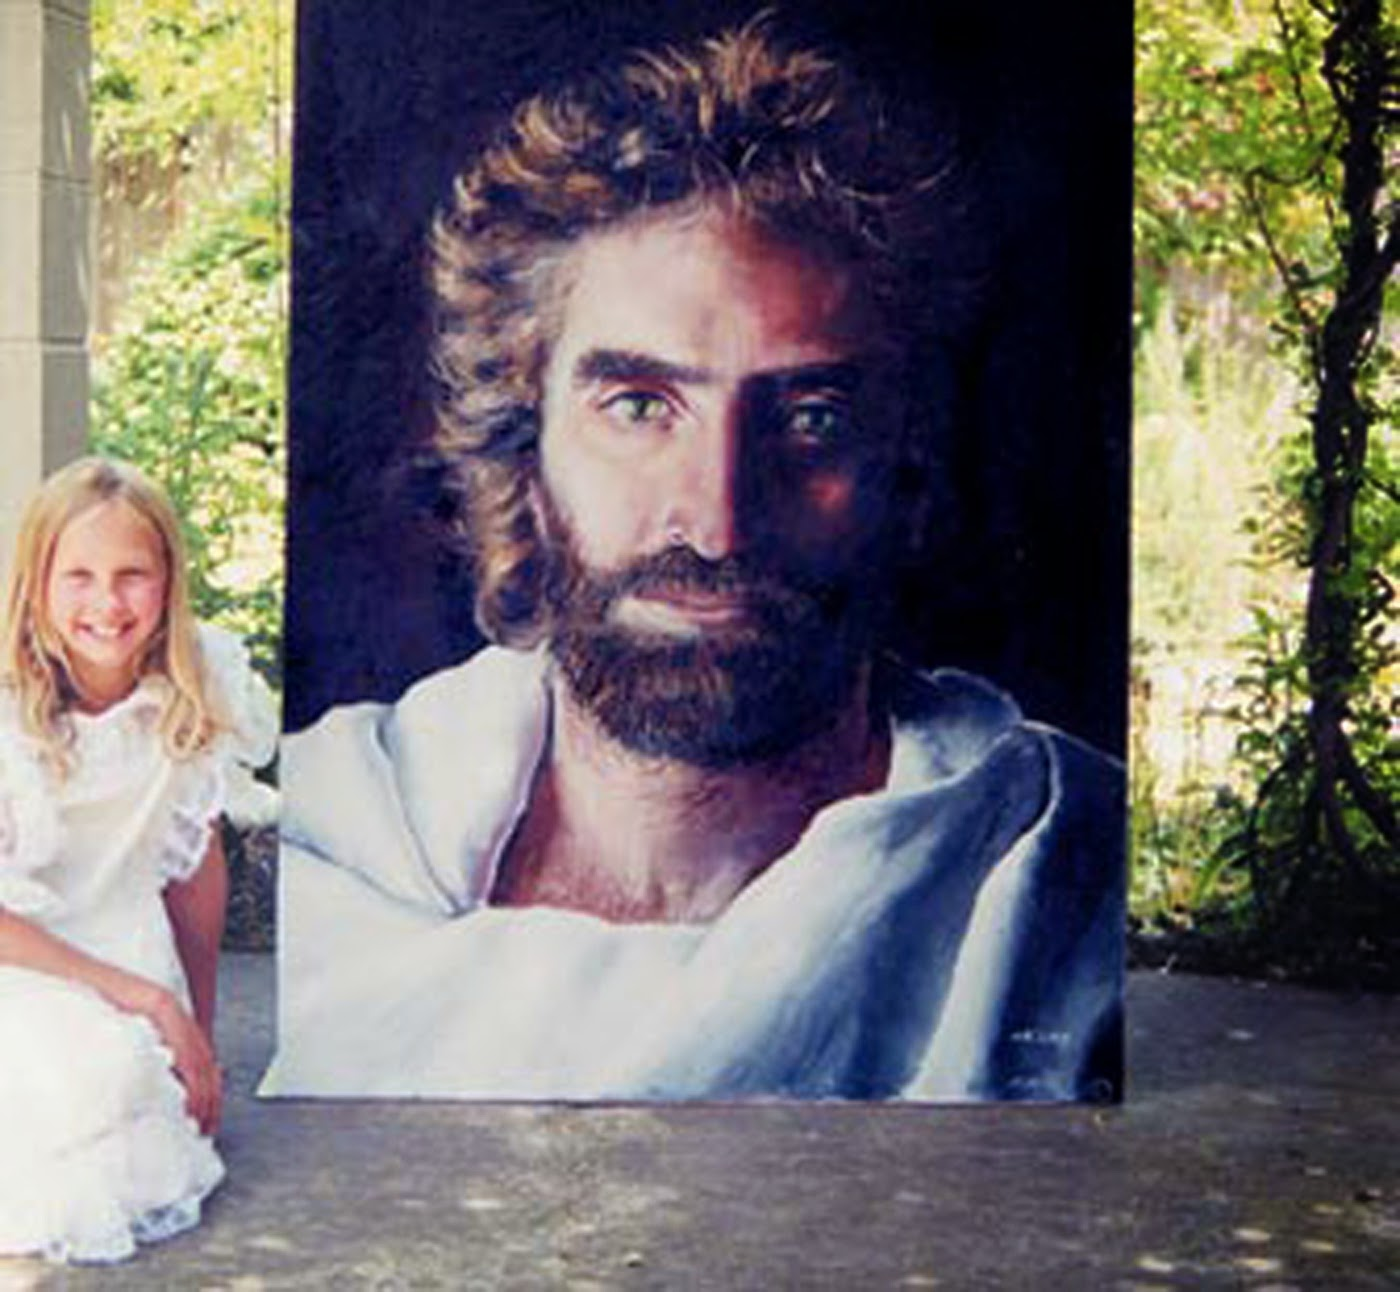 12 Year Old Girl Paints Heaven, Child Prodigy [VIDEO] - Akiane Kramarik